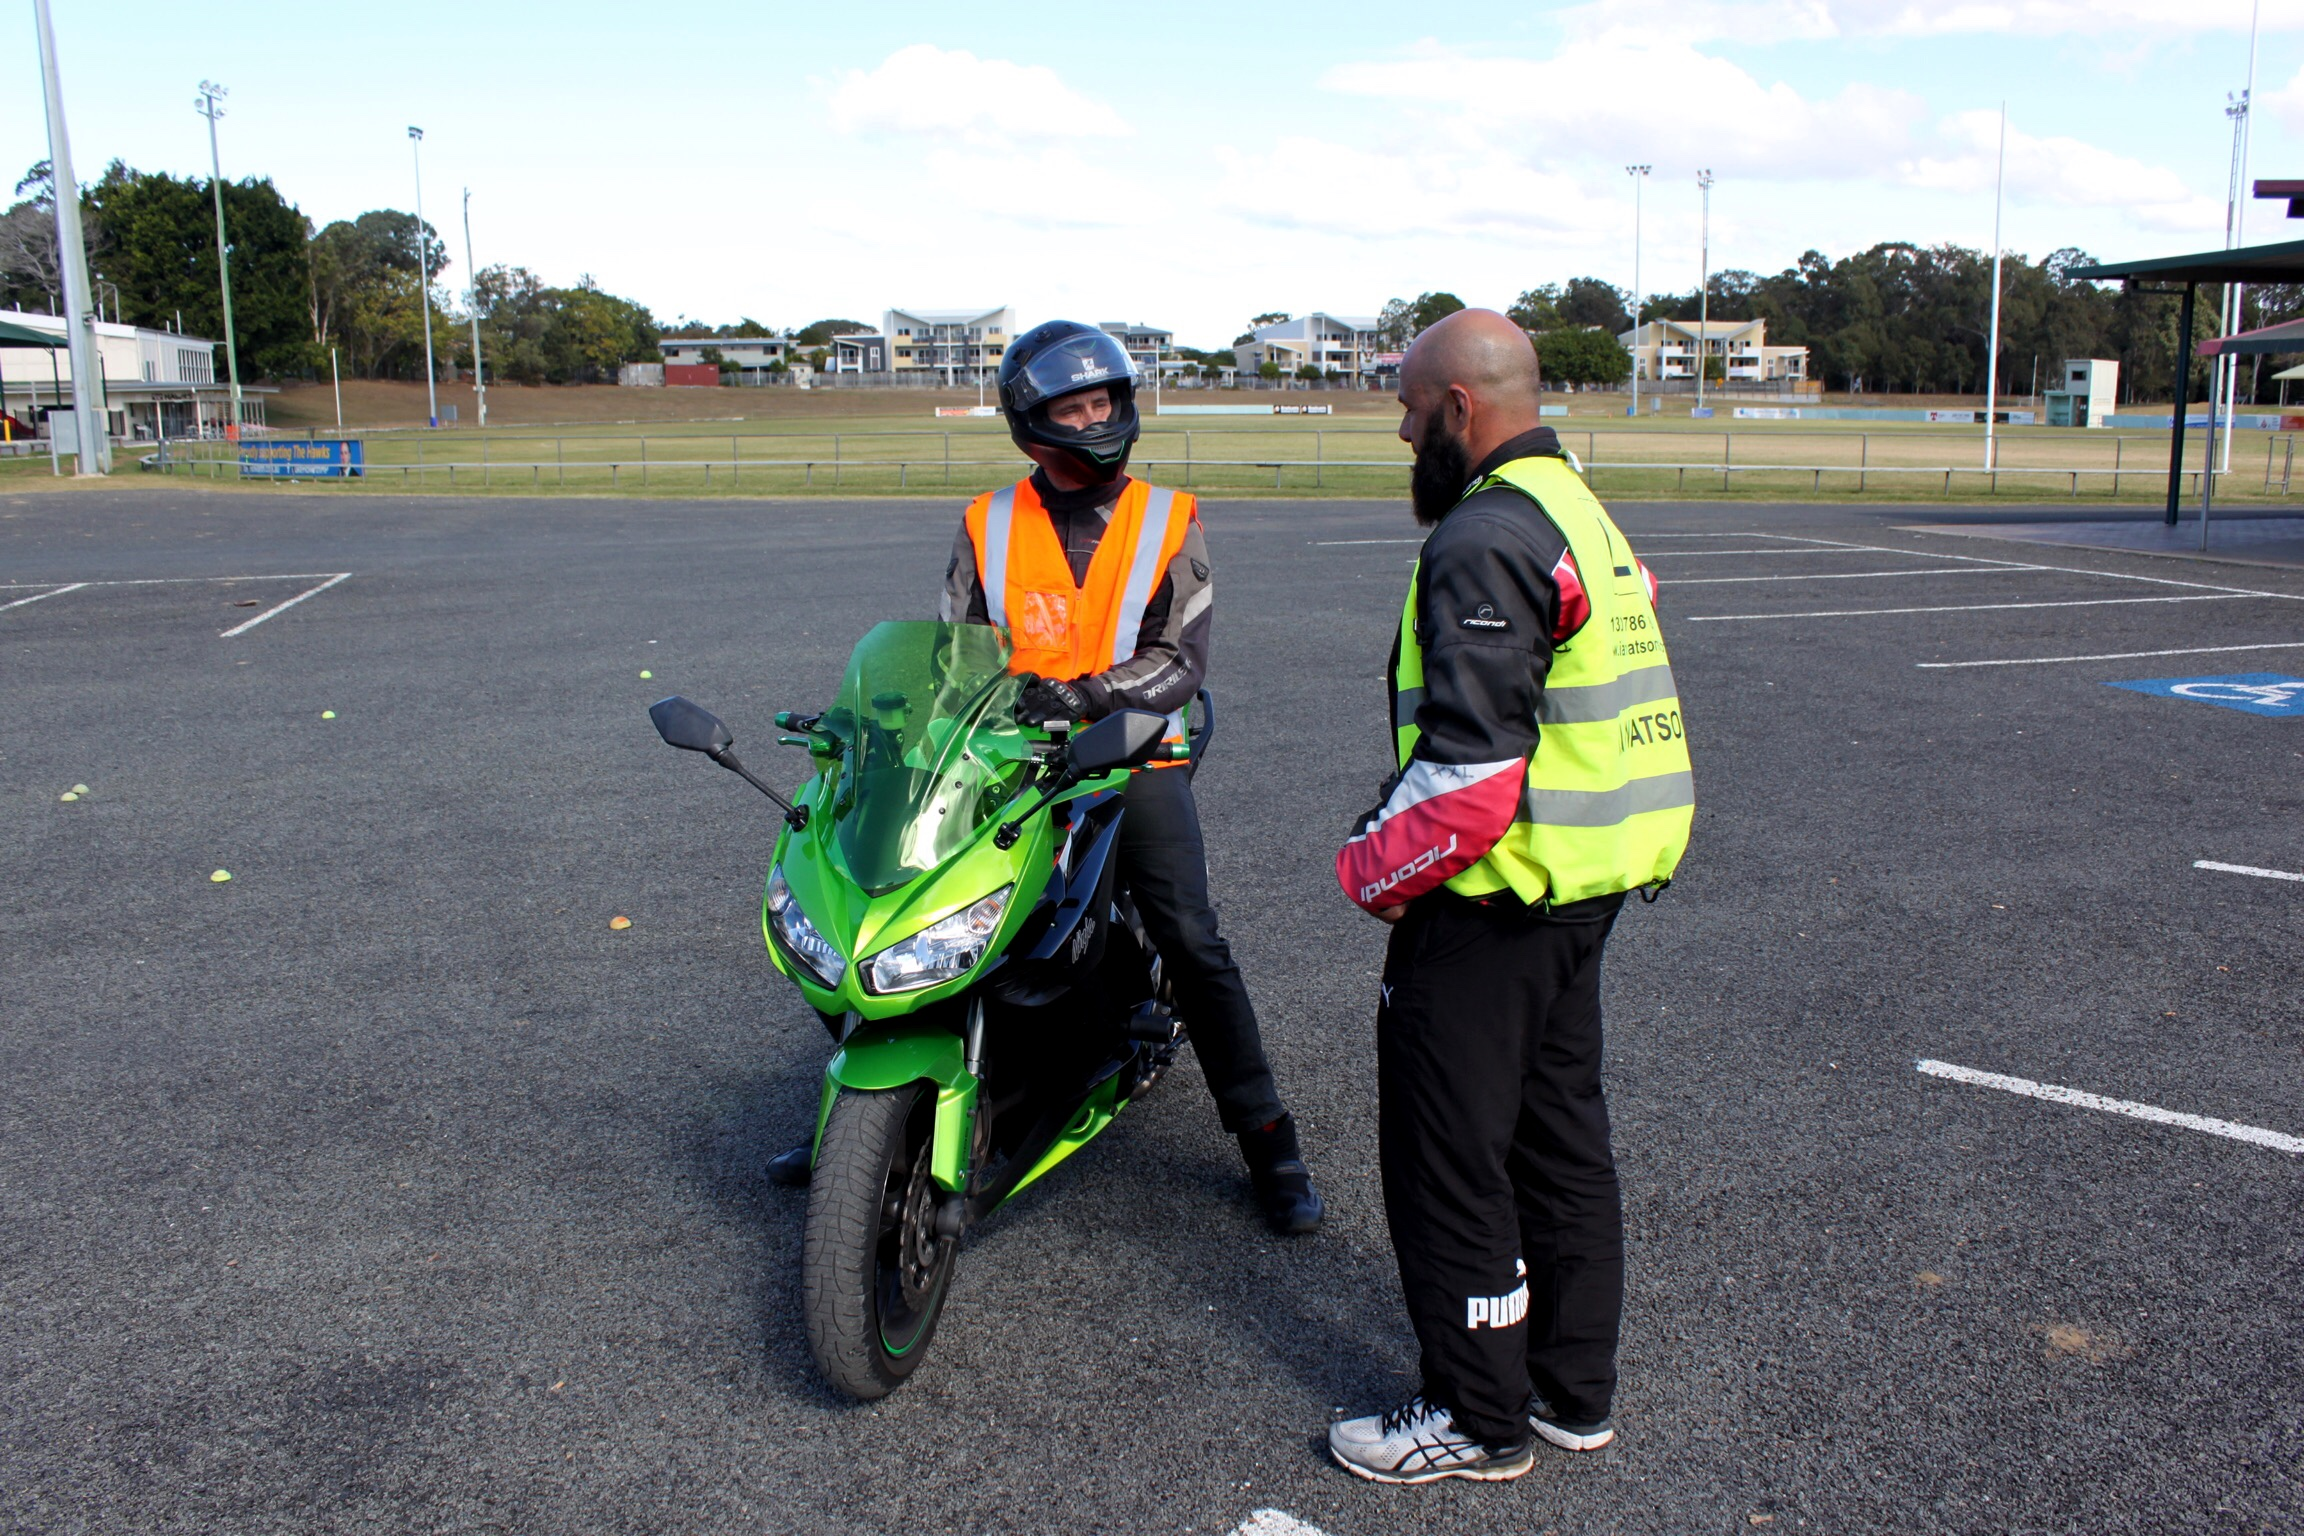 How to Avoid a Motorcycle Accident - be defensive, proactive and also be cooperative with other road users